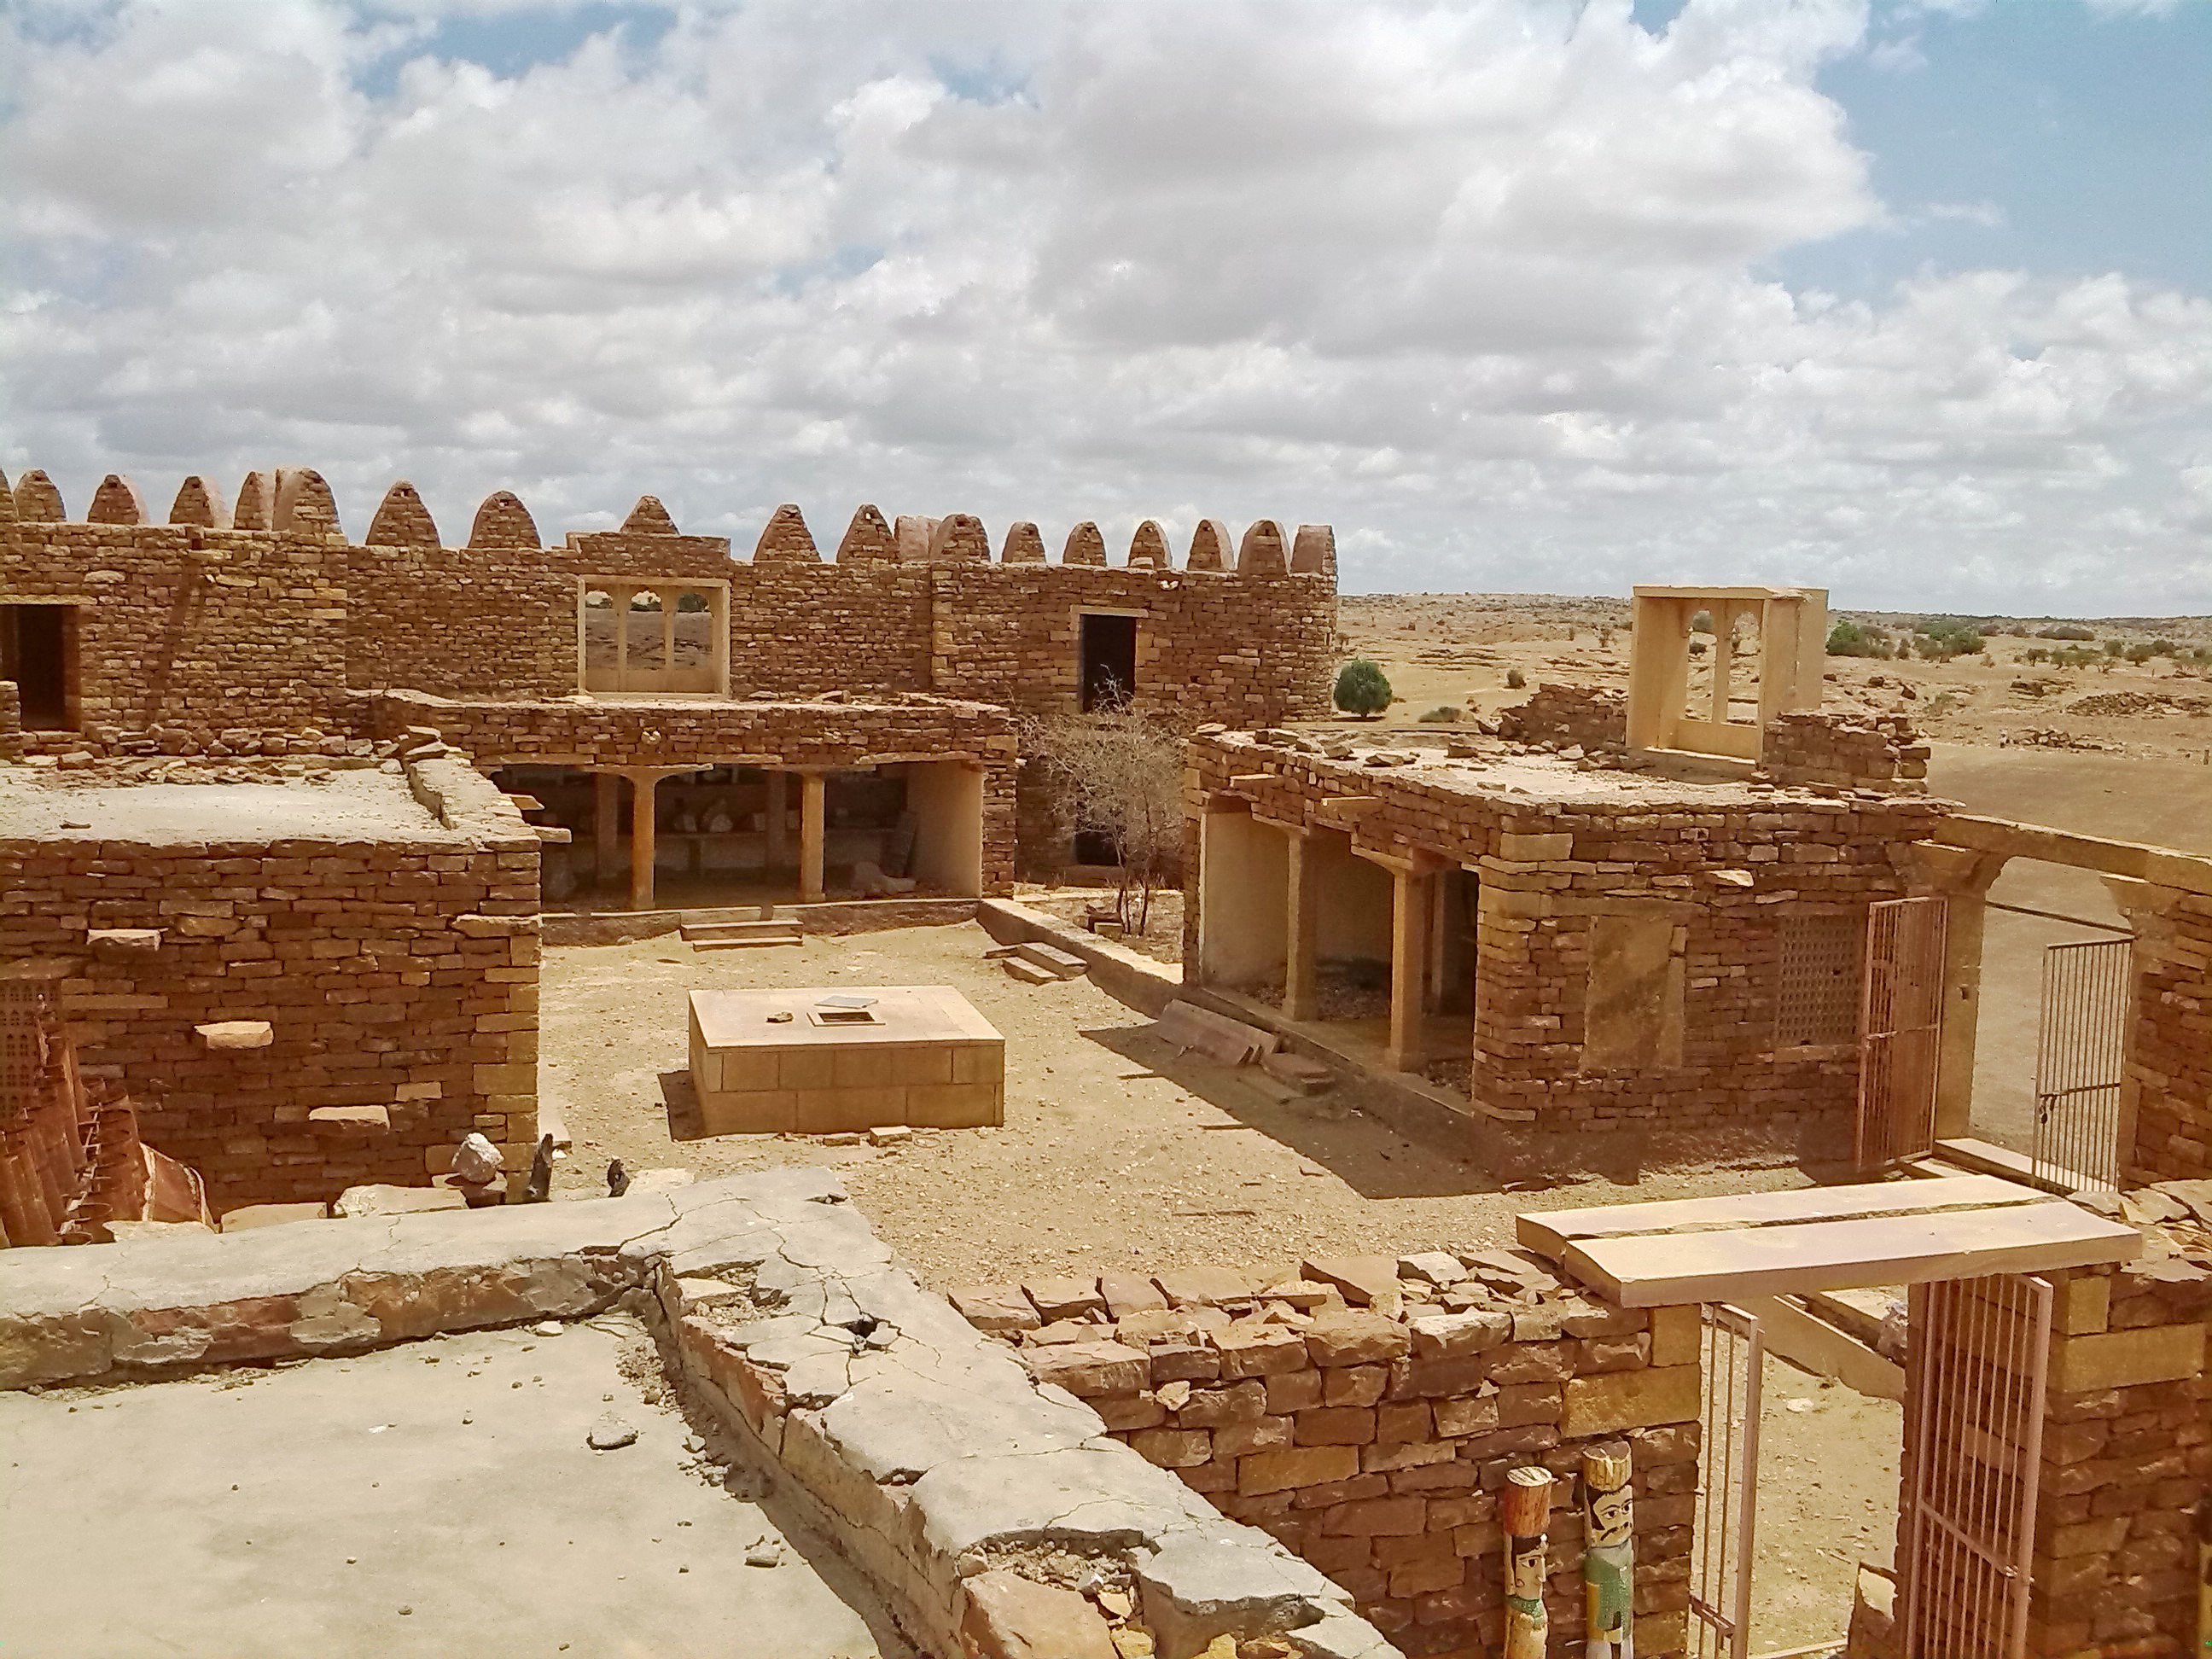 1511335898_ruins-of-khaba-fort-converted-into-a-museum.jpg